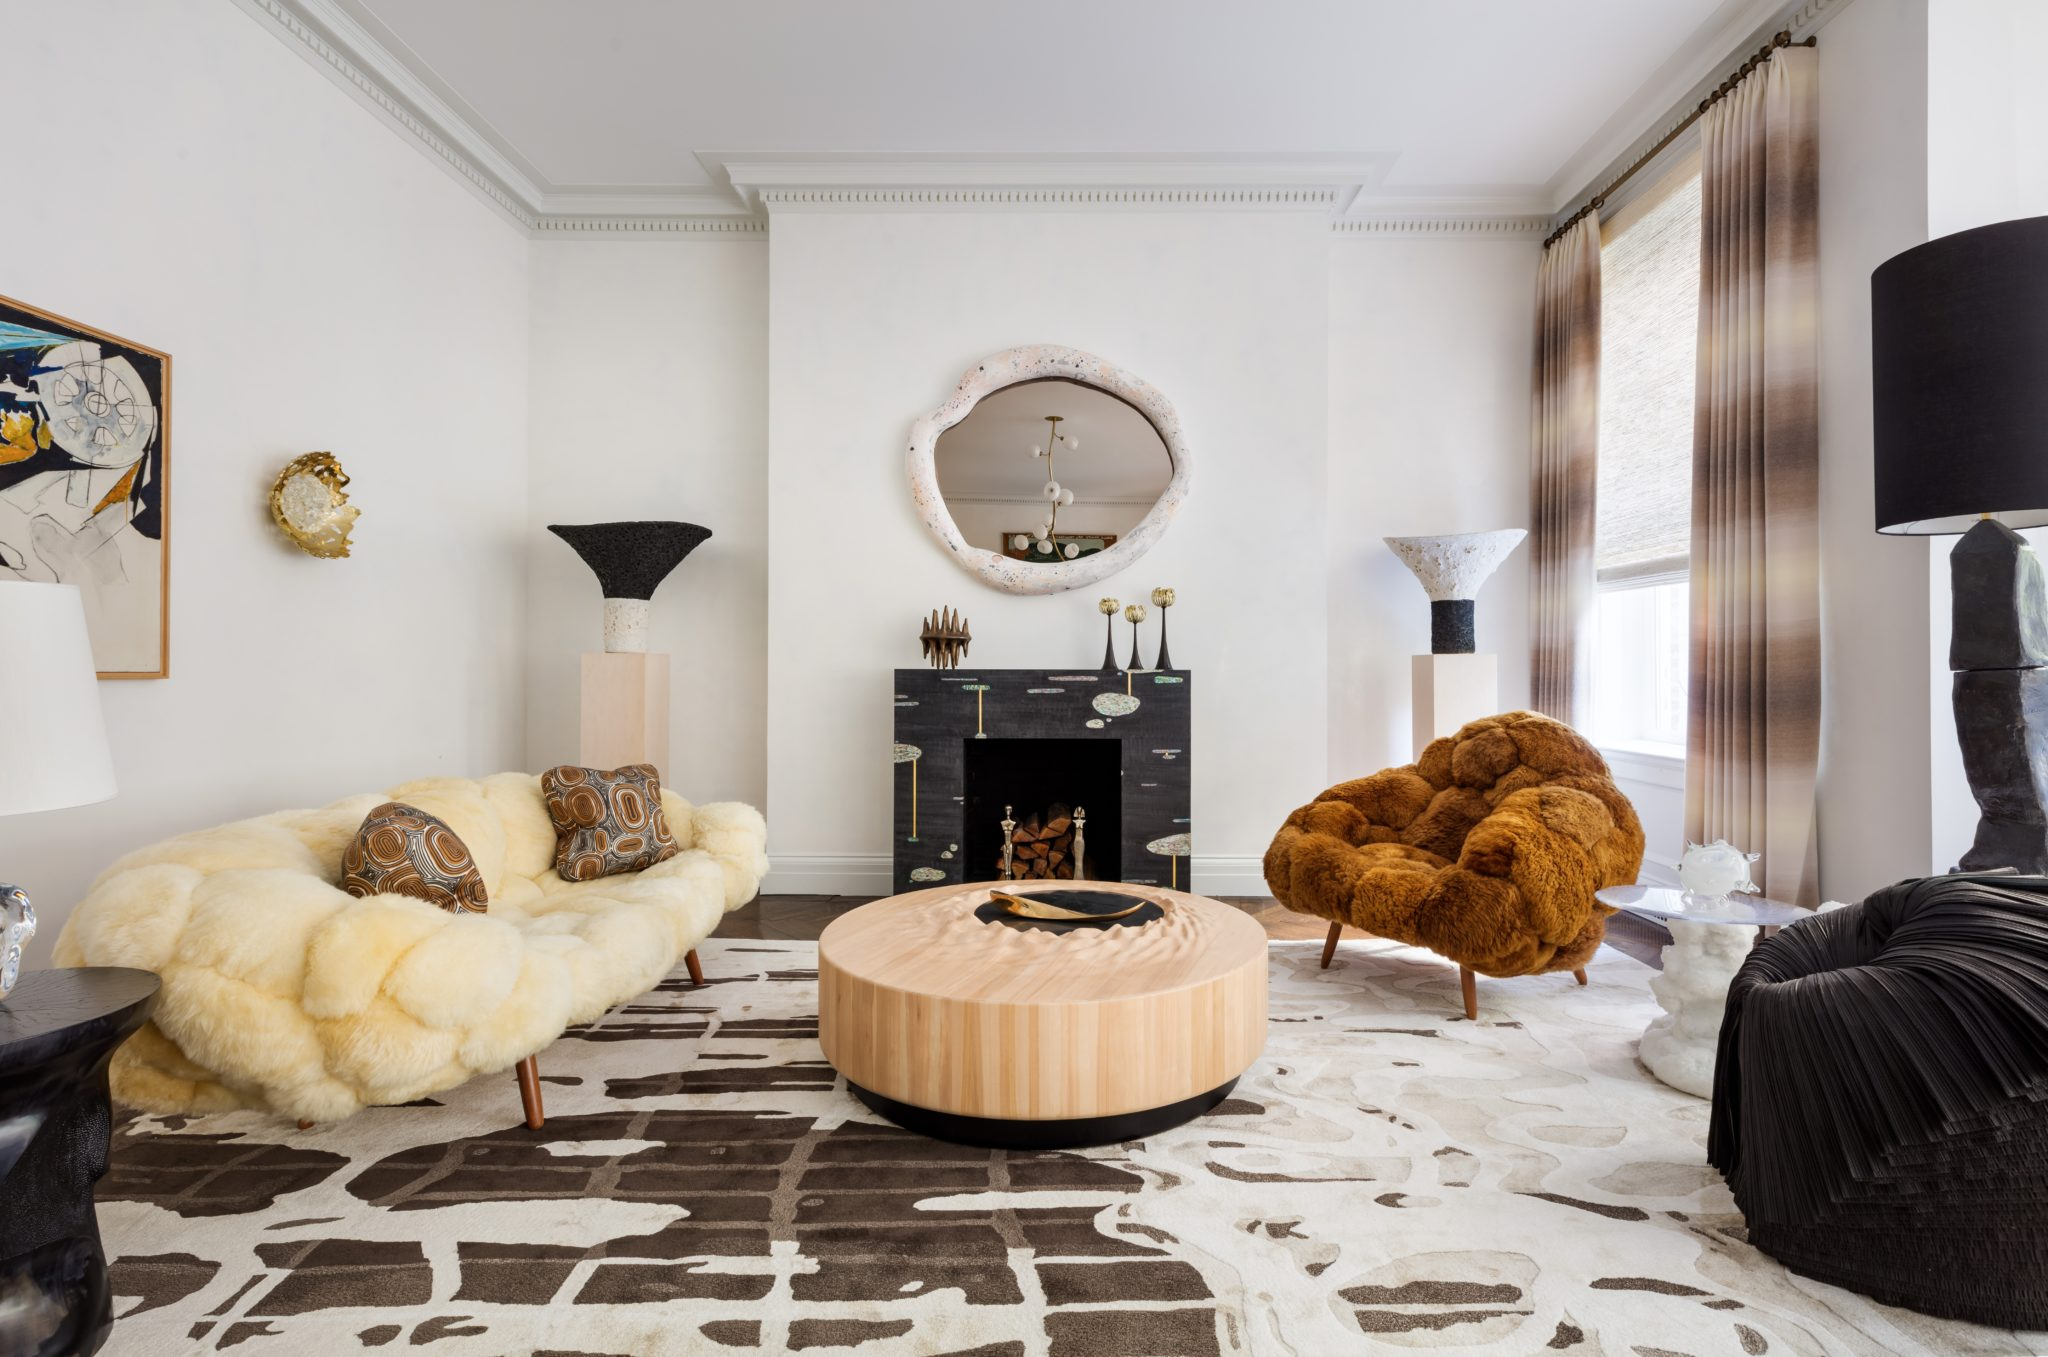 Jeff Lincoln Interiorscurated a collection of new pieces debuting this year at Kips Bay Show House, including products from the Rug Company andRichard Shemtov of Dune, along with work from acclaimed artists like the postmodern painterMario Schifano. The window treatments were designed bytheThe Shade Store.